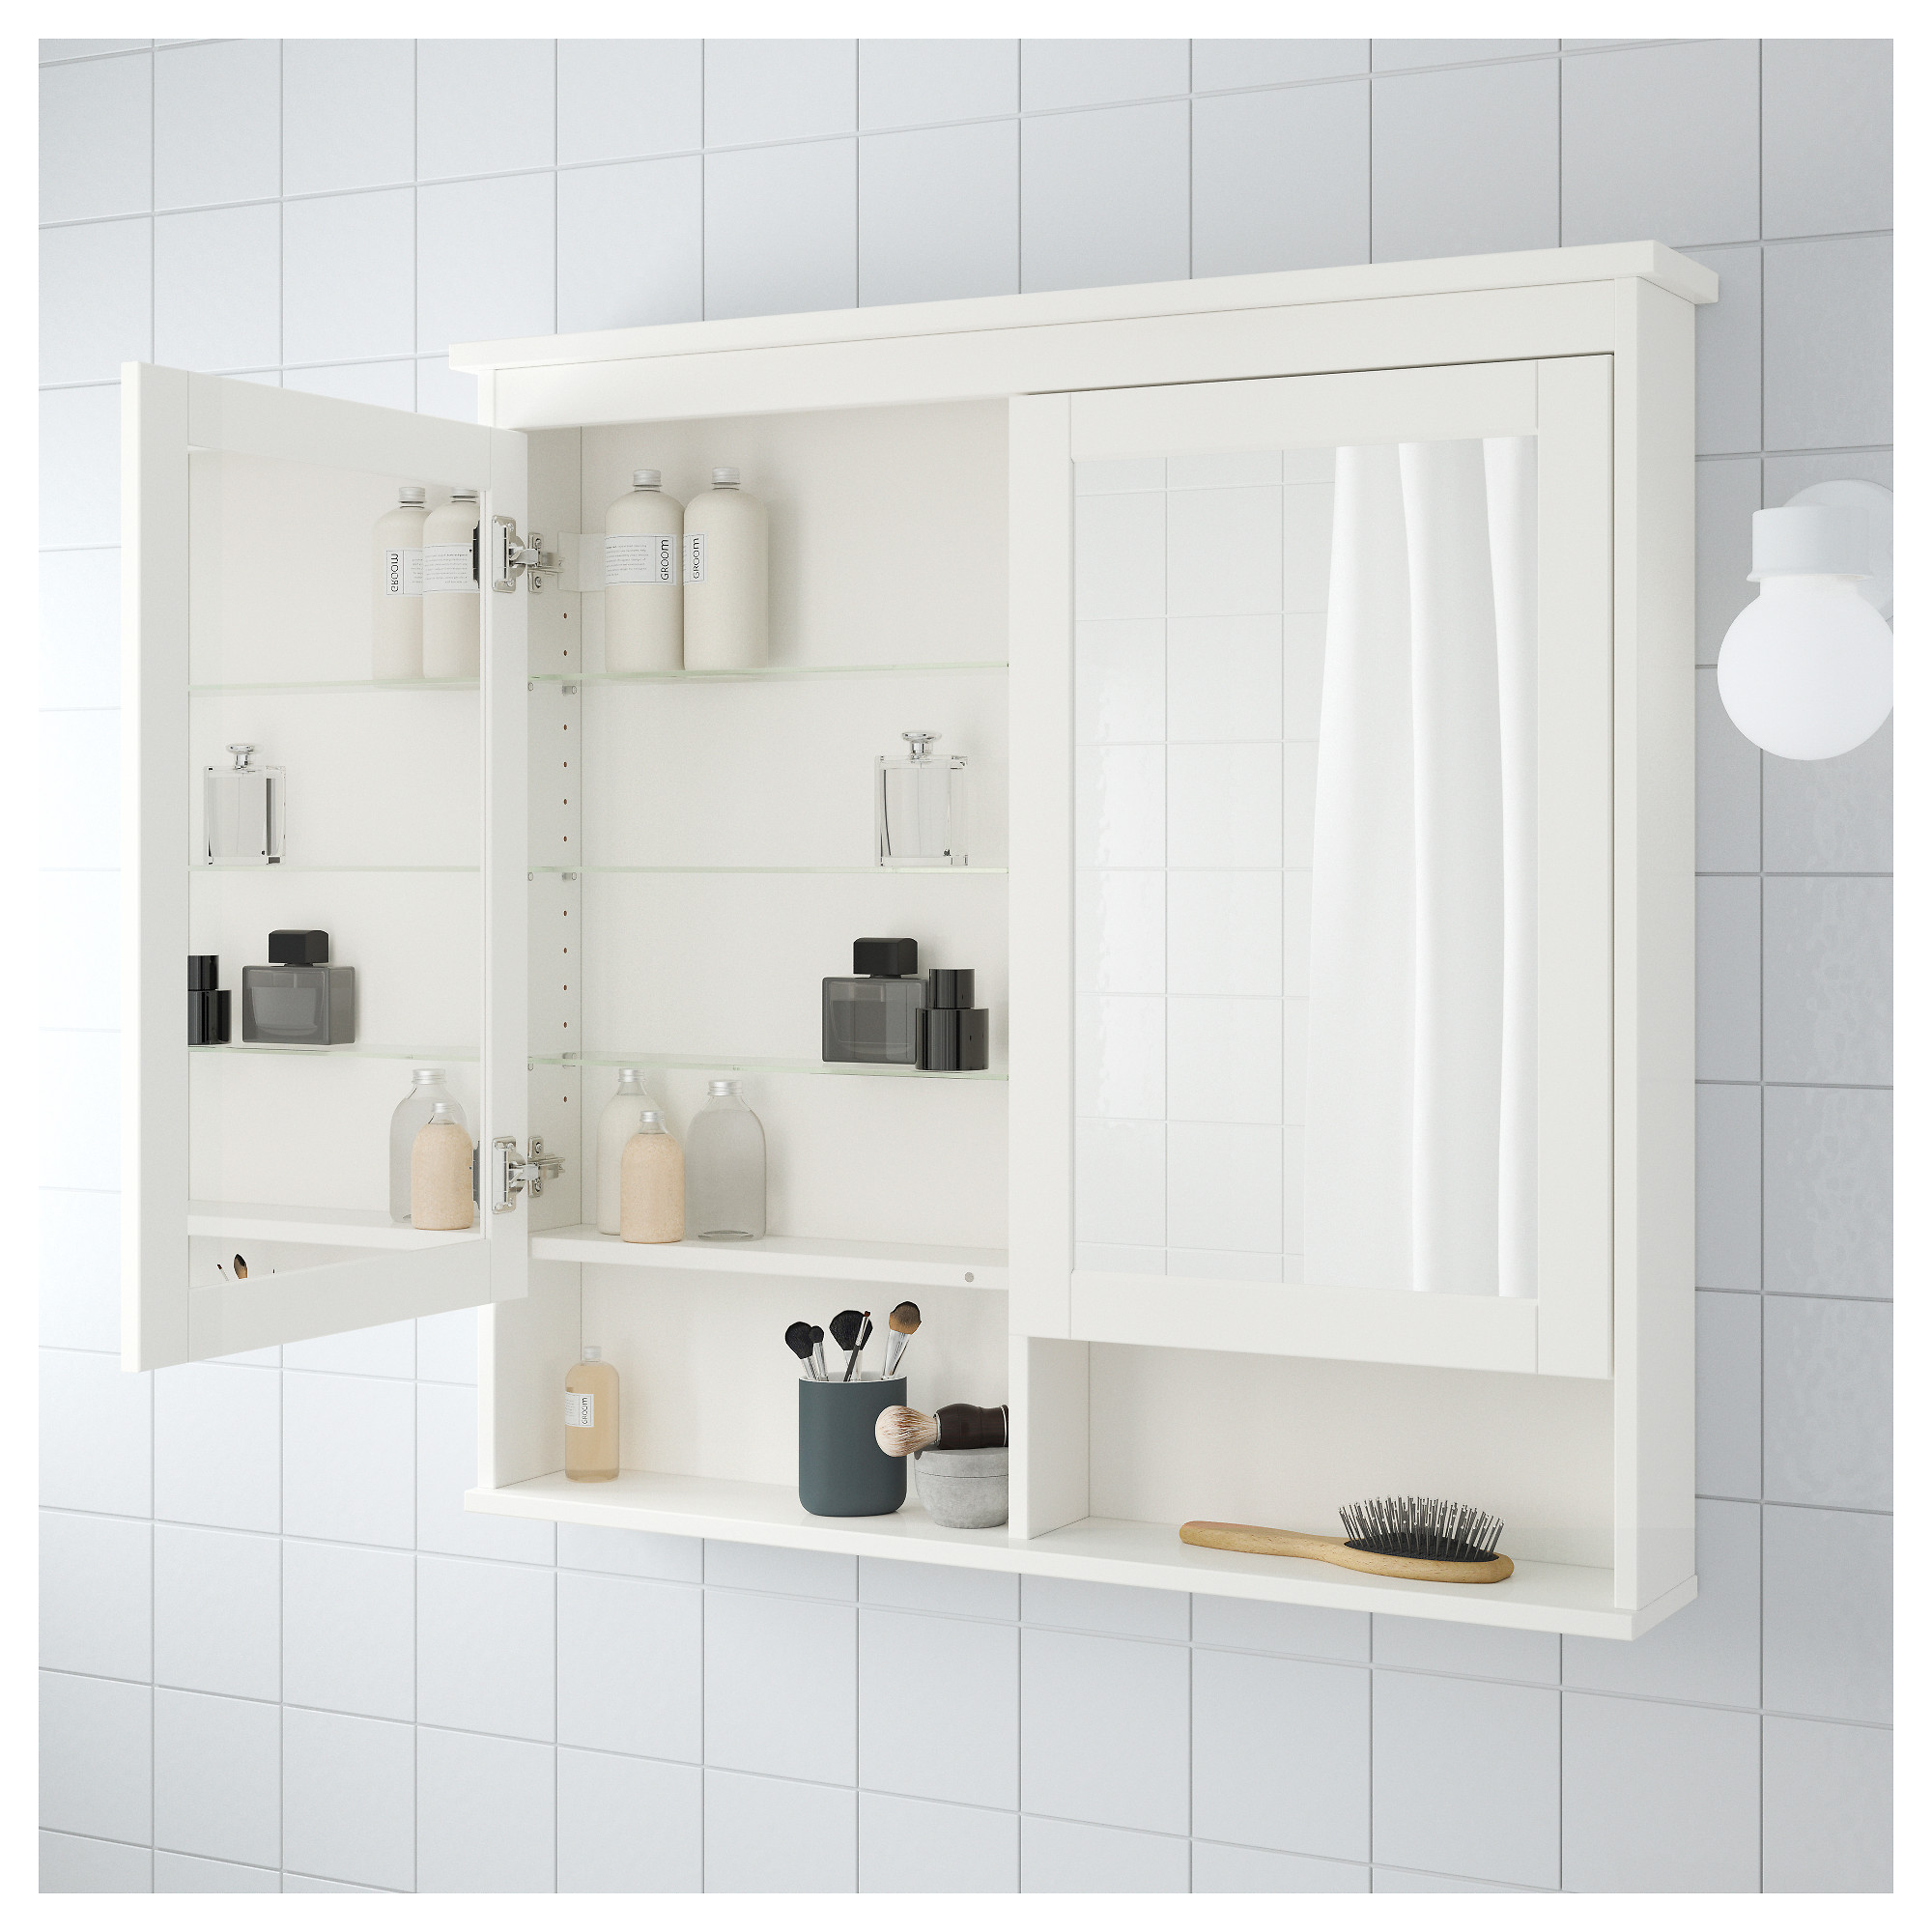 Ikea Bathroom Cabinet Doors New in Home Decorating Ideas